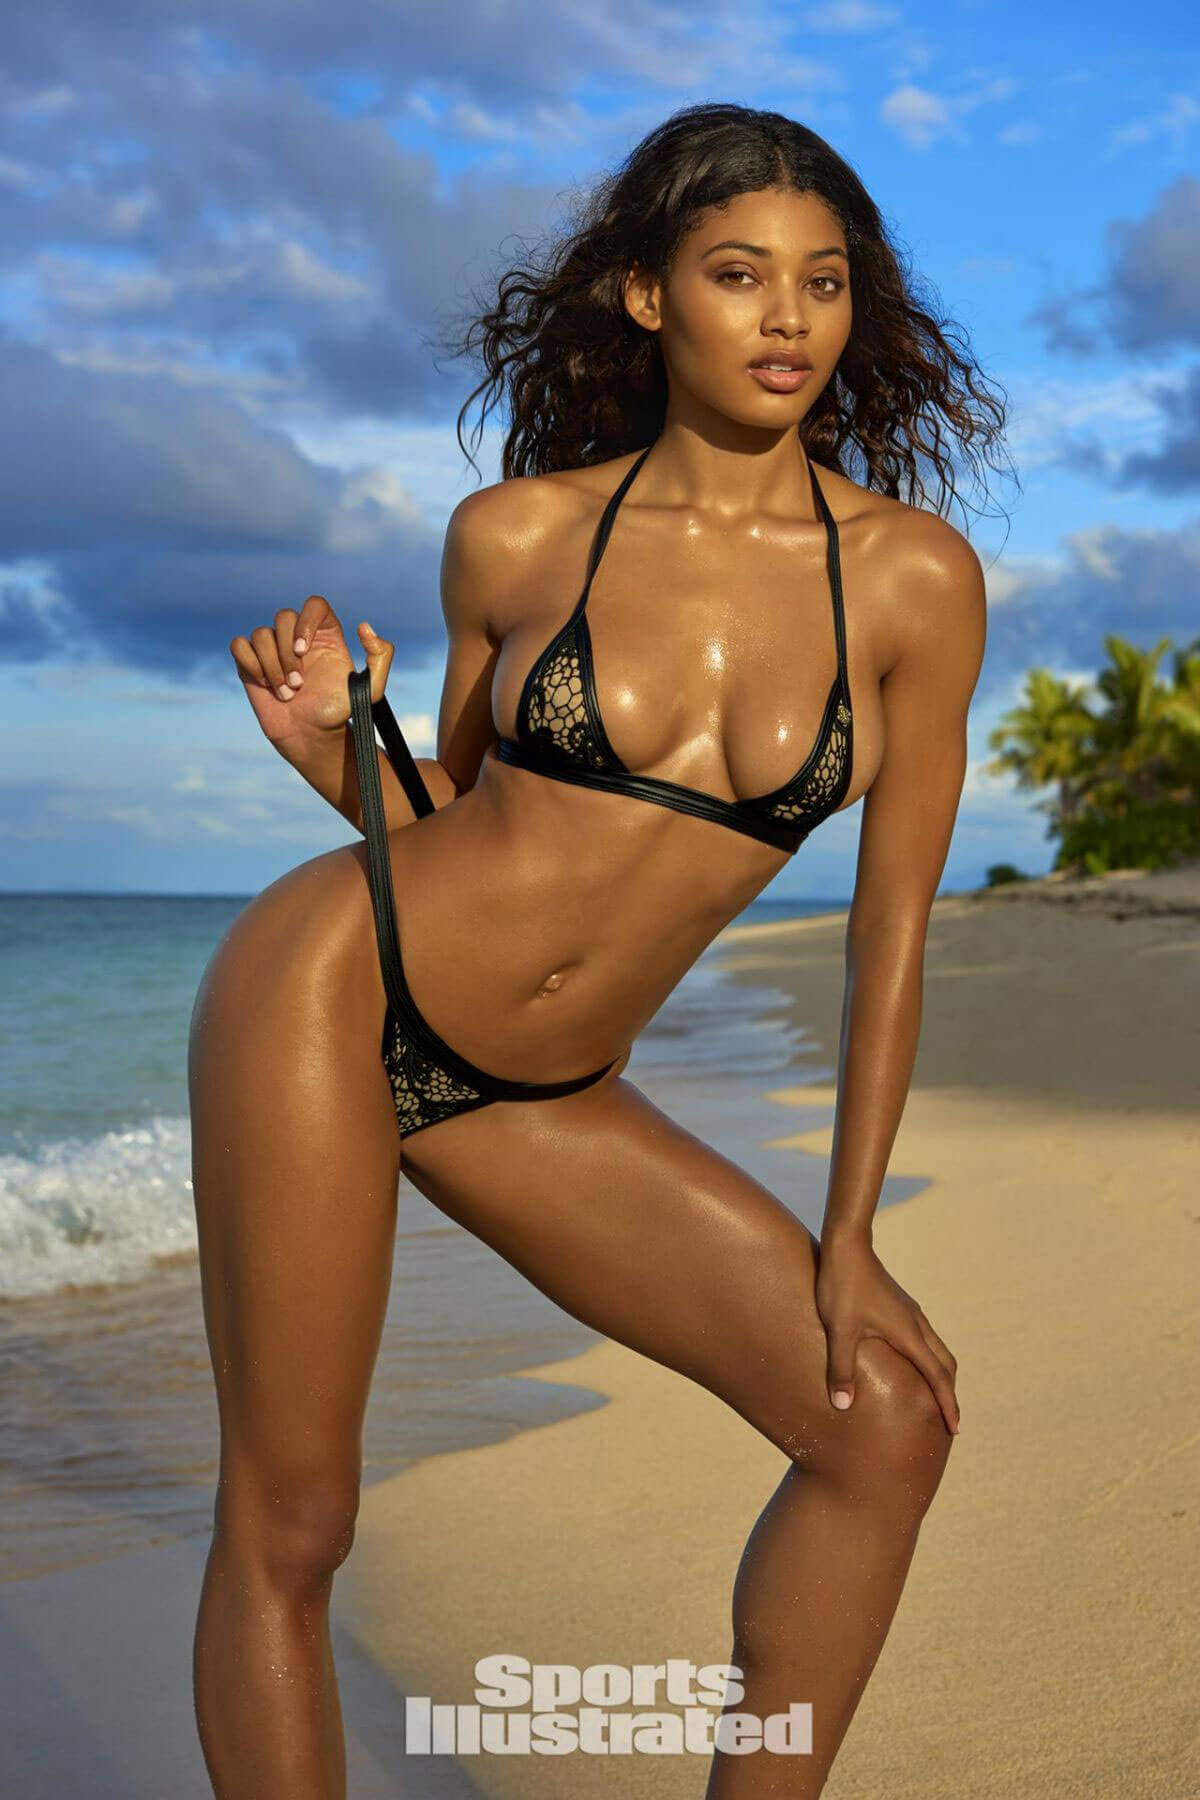 Danielle Herrington Stills in Sports Illustrated Swimsuit Edition 2017